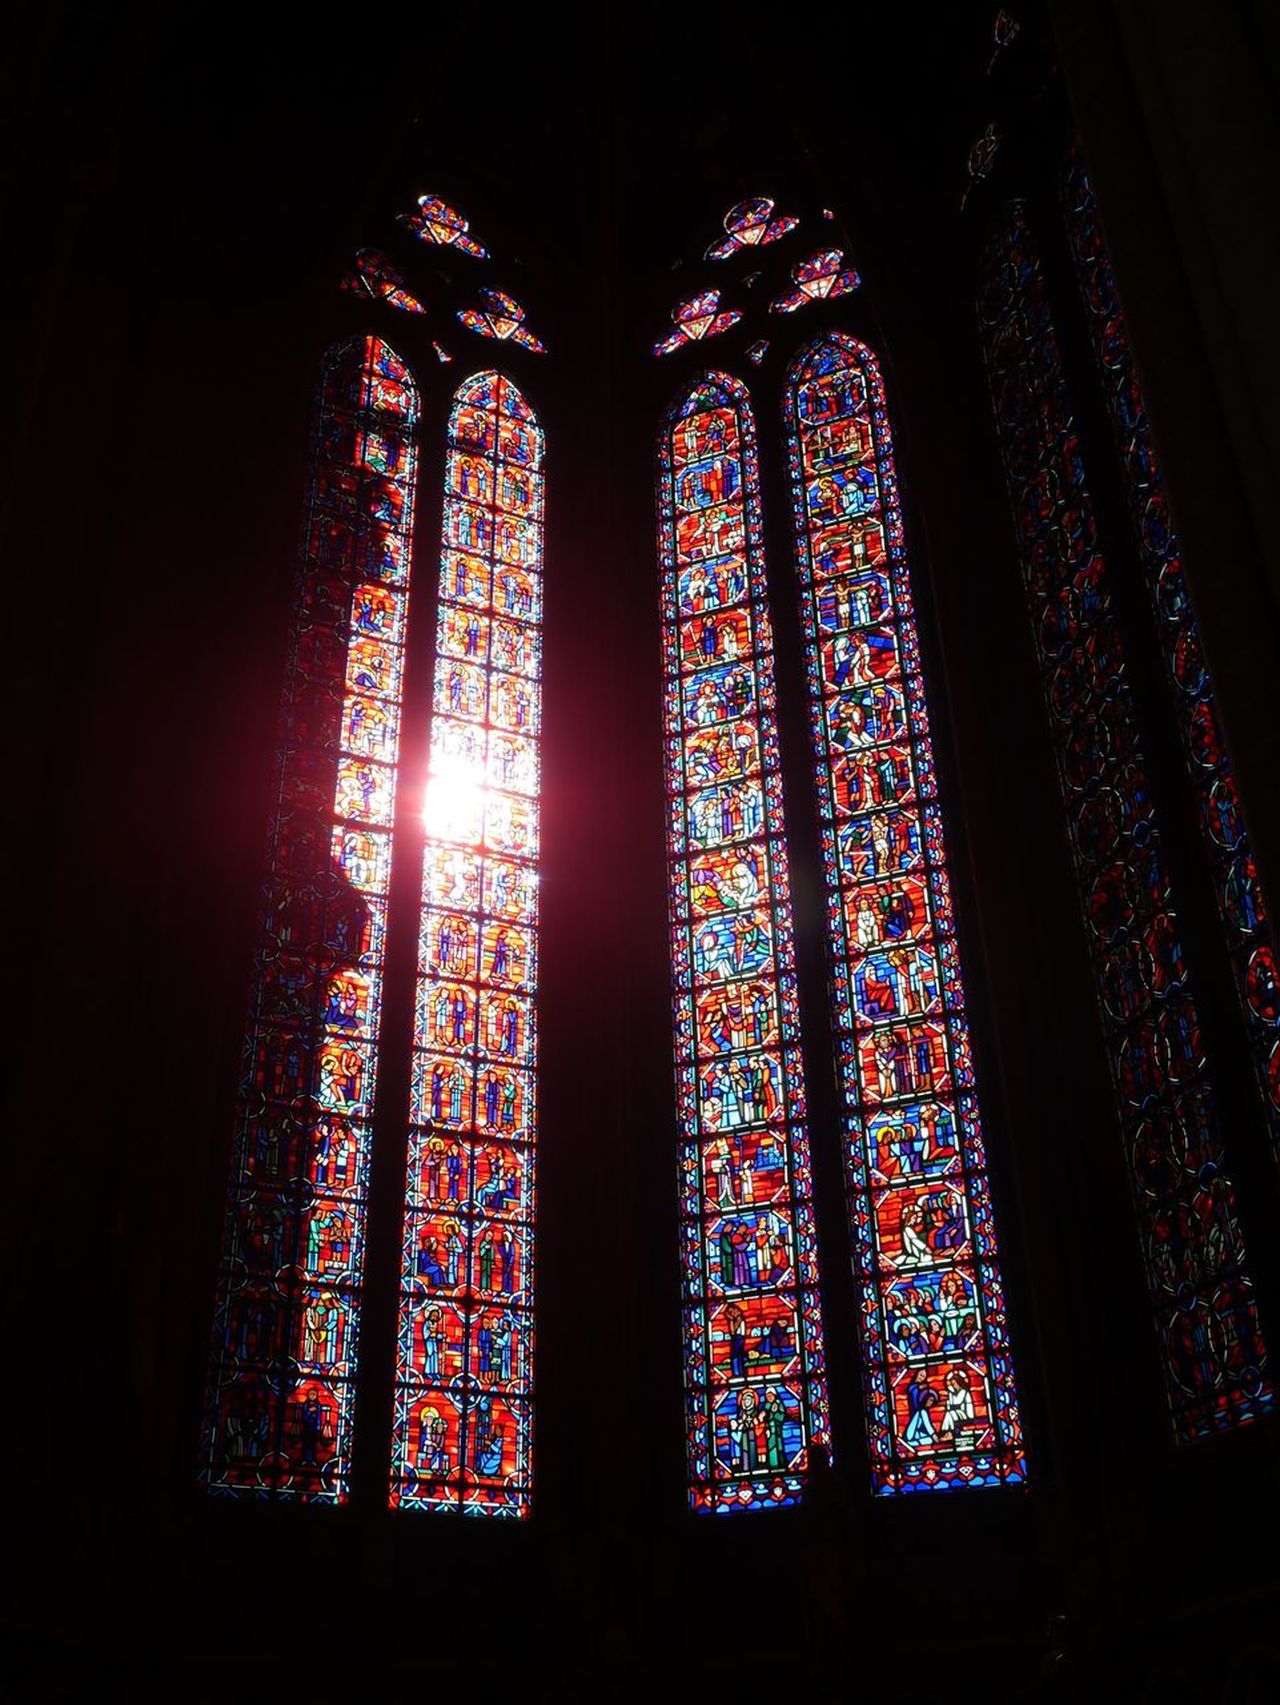 Stained Glass Stained Glass Window Light Colours Amiens Cathedral Cathedral Des Notes Dames Place Of Worship Church